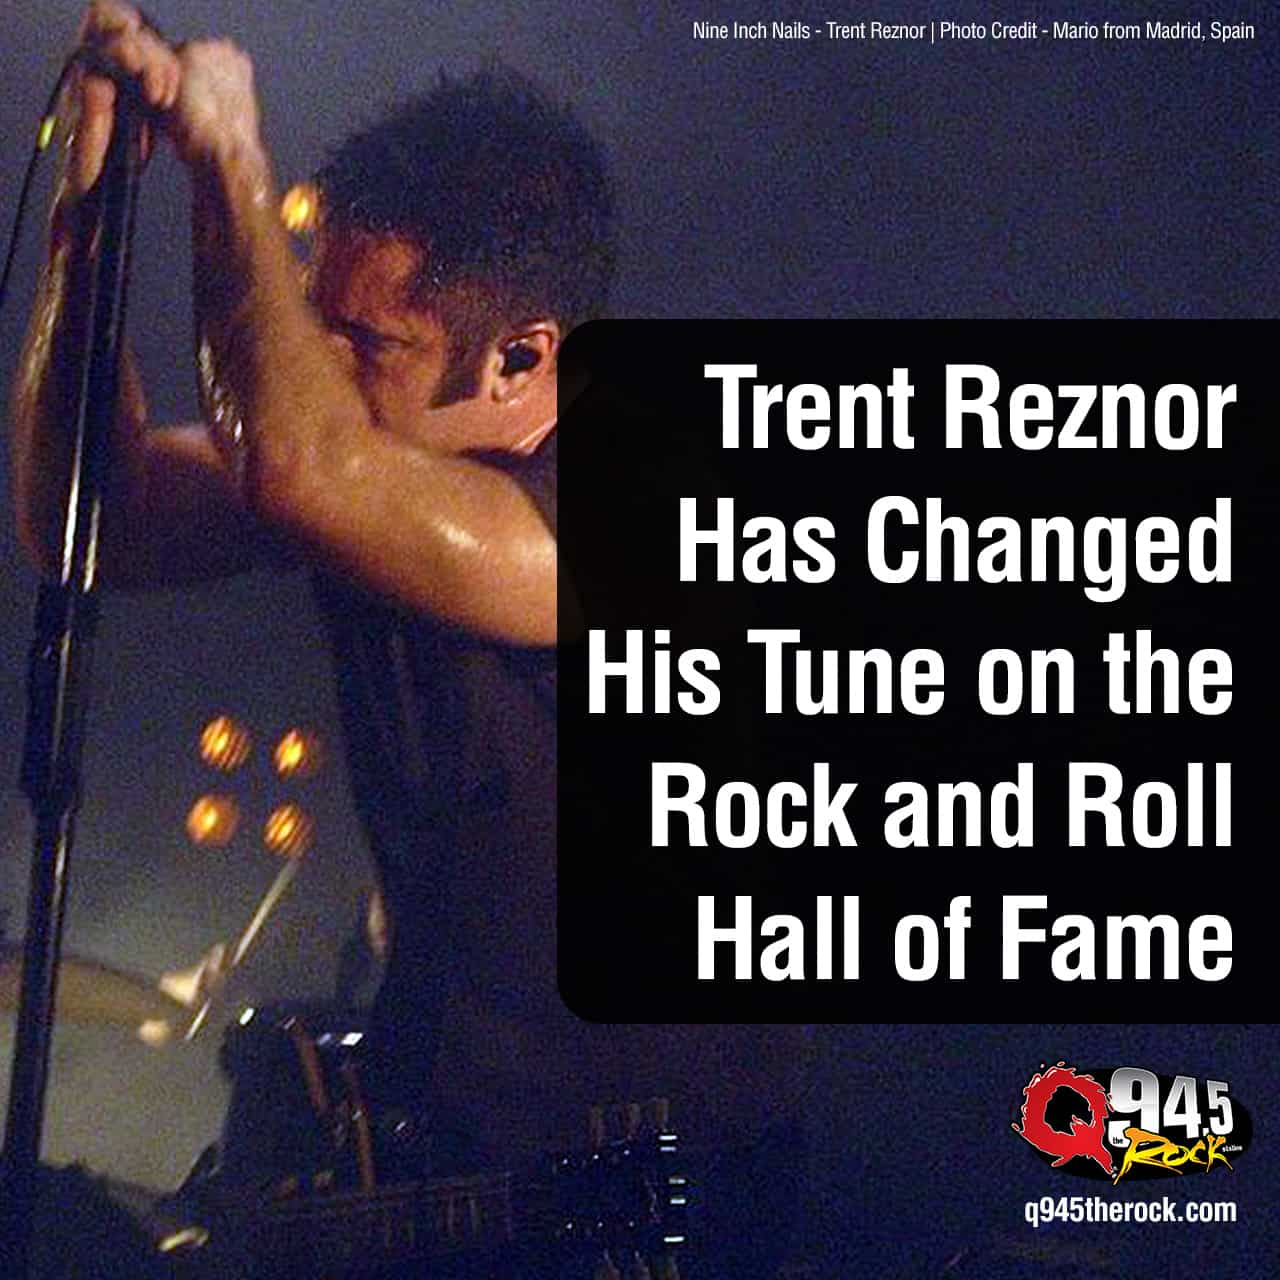 Trent Reznor Has Changed His Tune on the Rock and Roll Hall of Fame